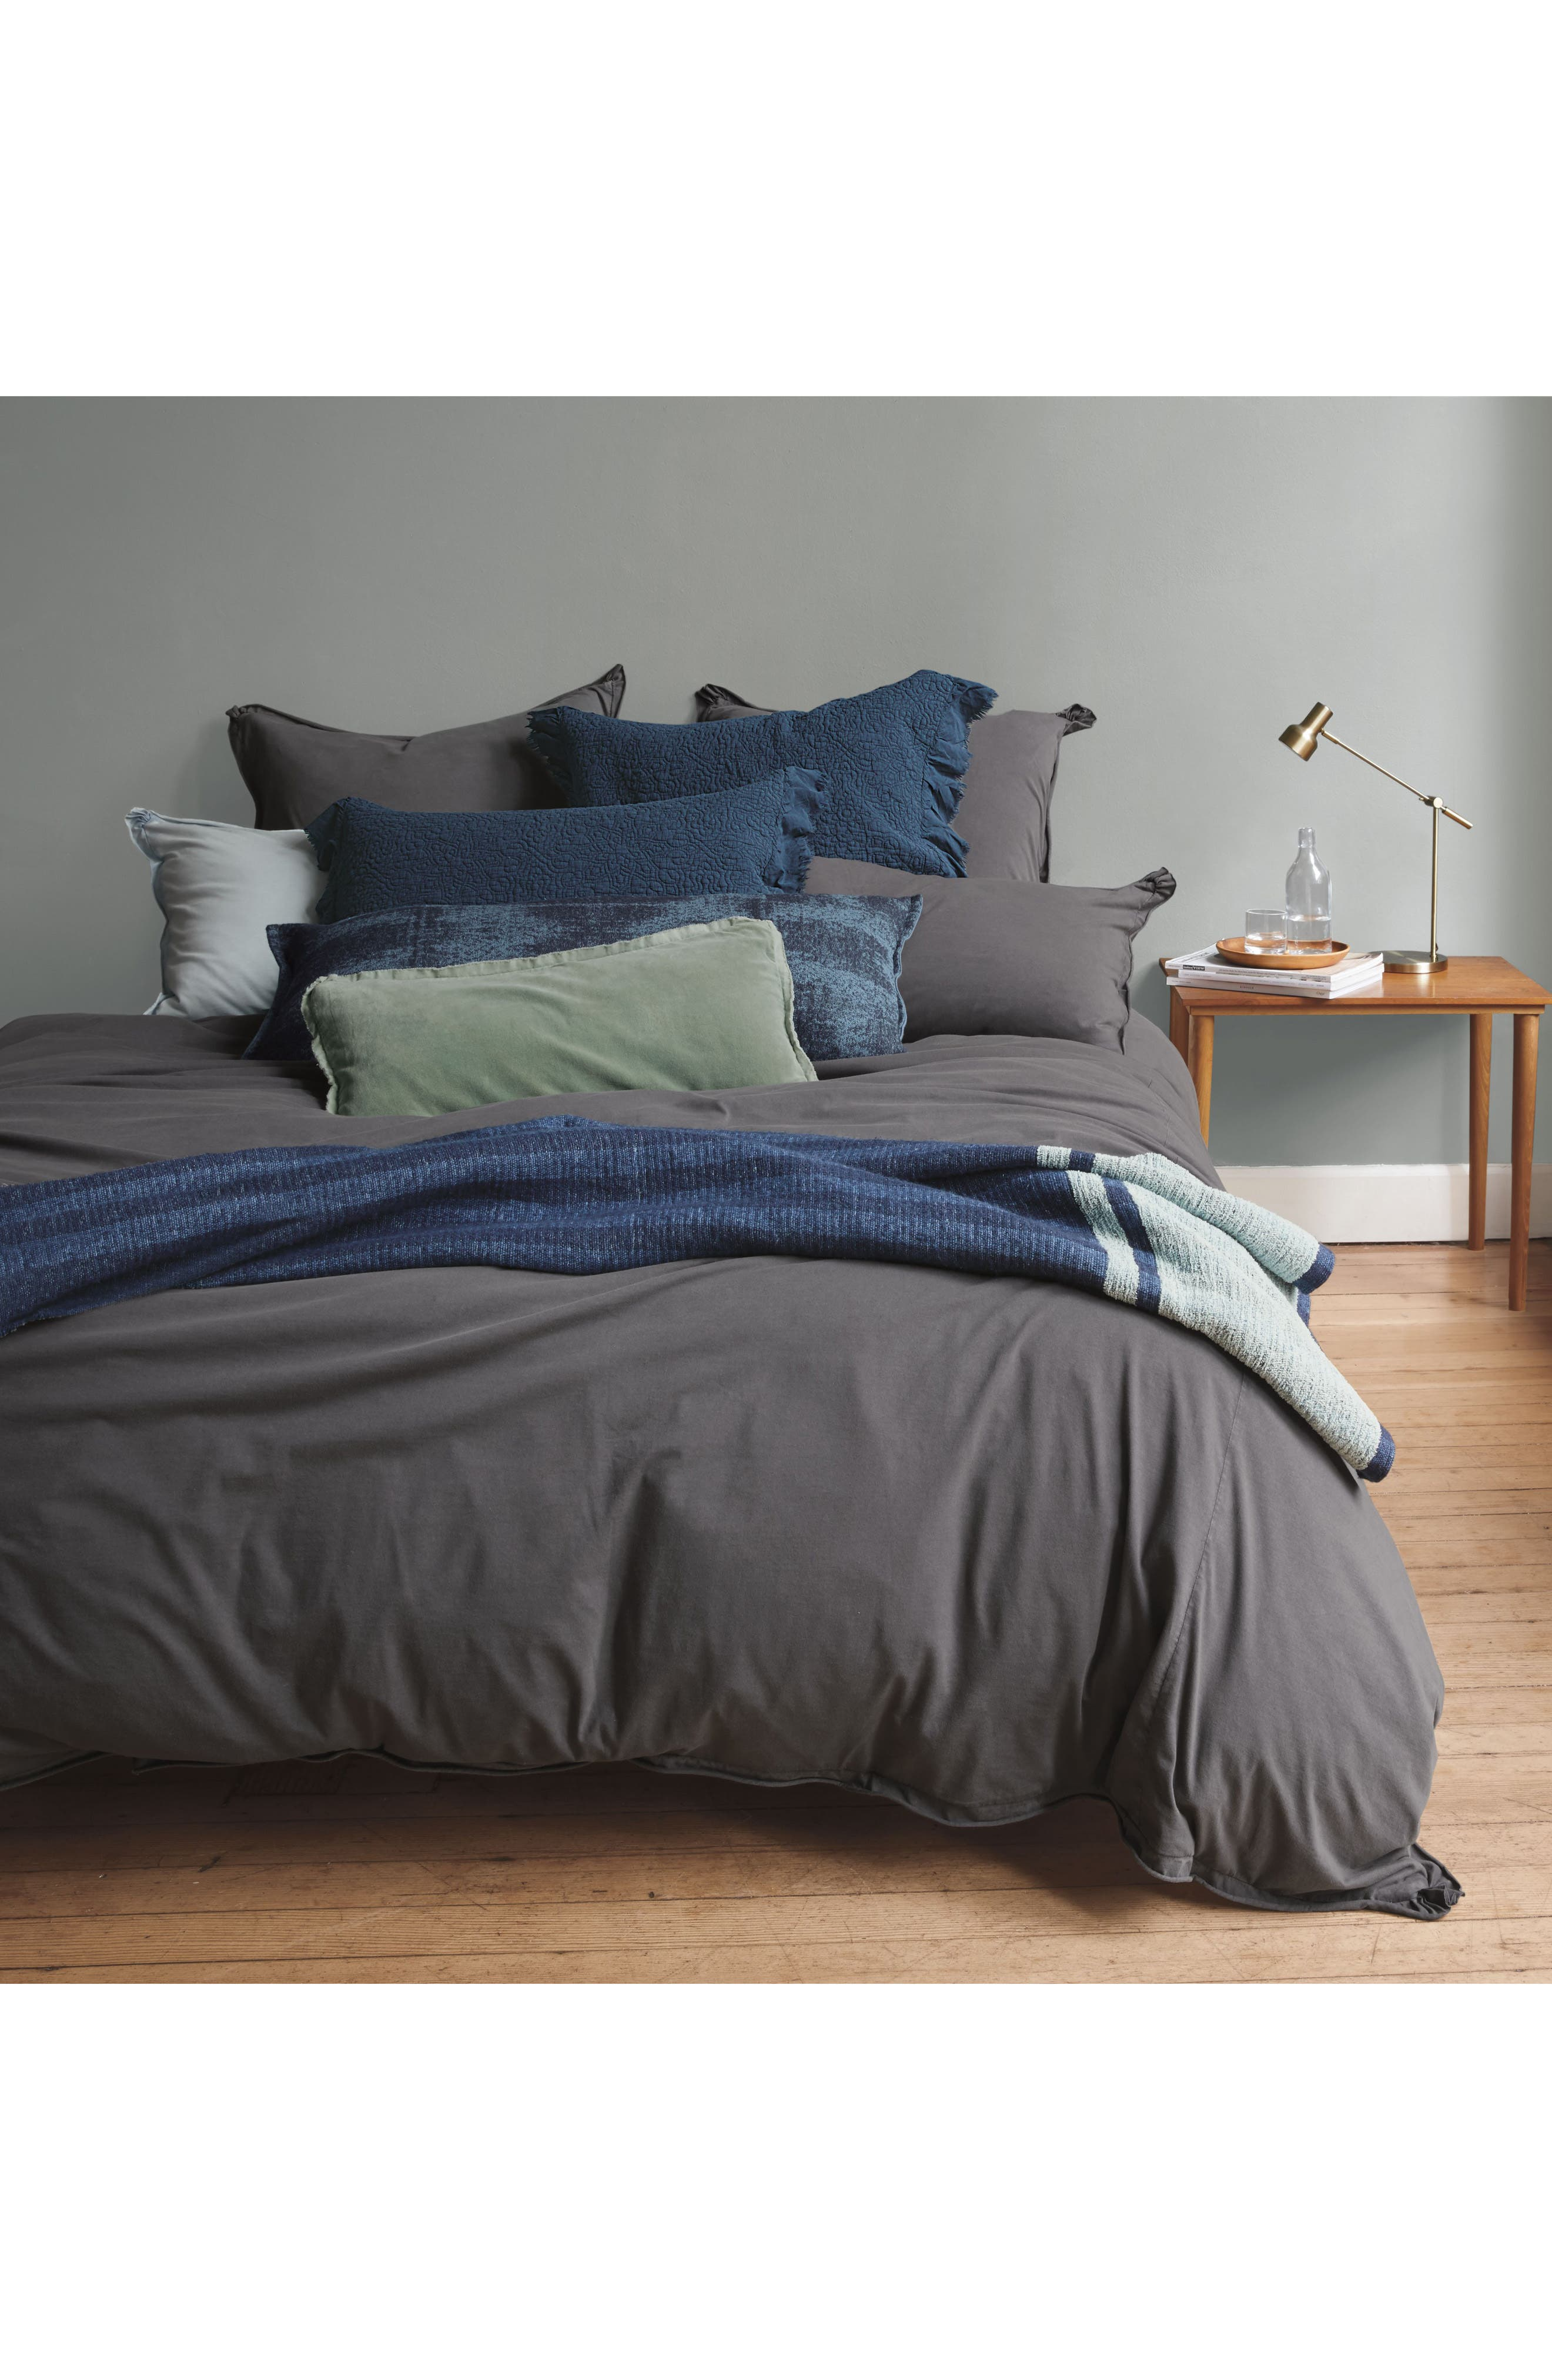 Stonewash Jersey Duvet Cover,                             Main thumbnail 1, color,                             Grey Onyx